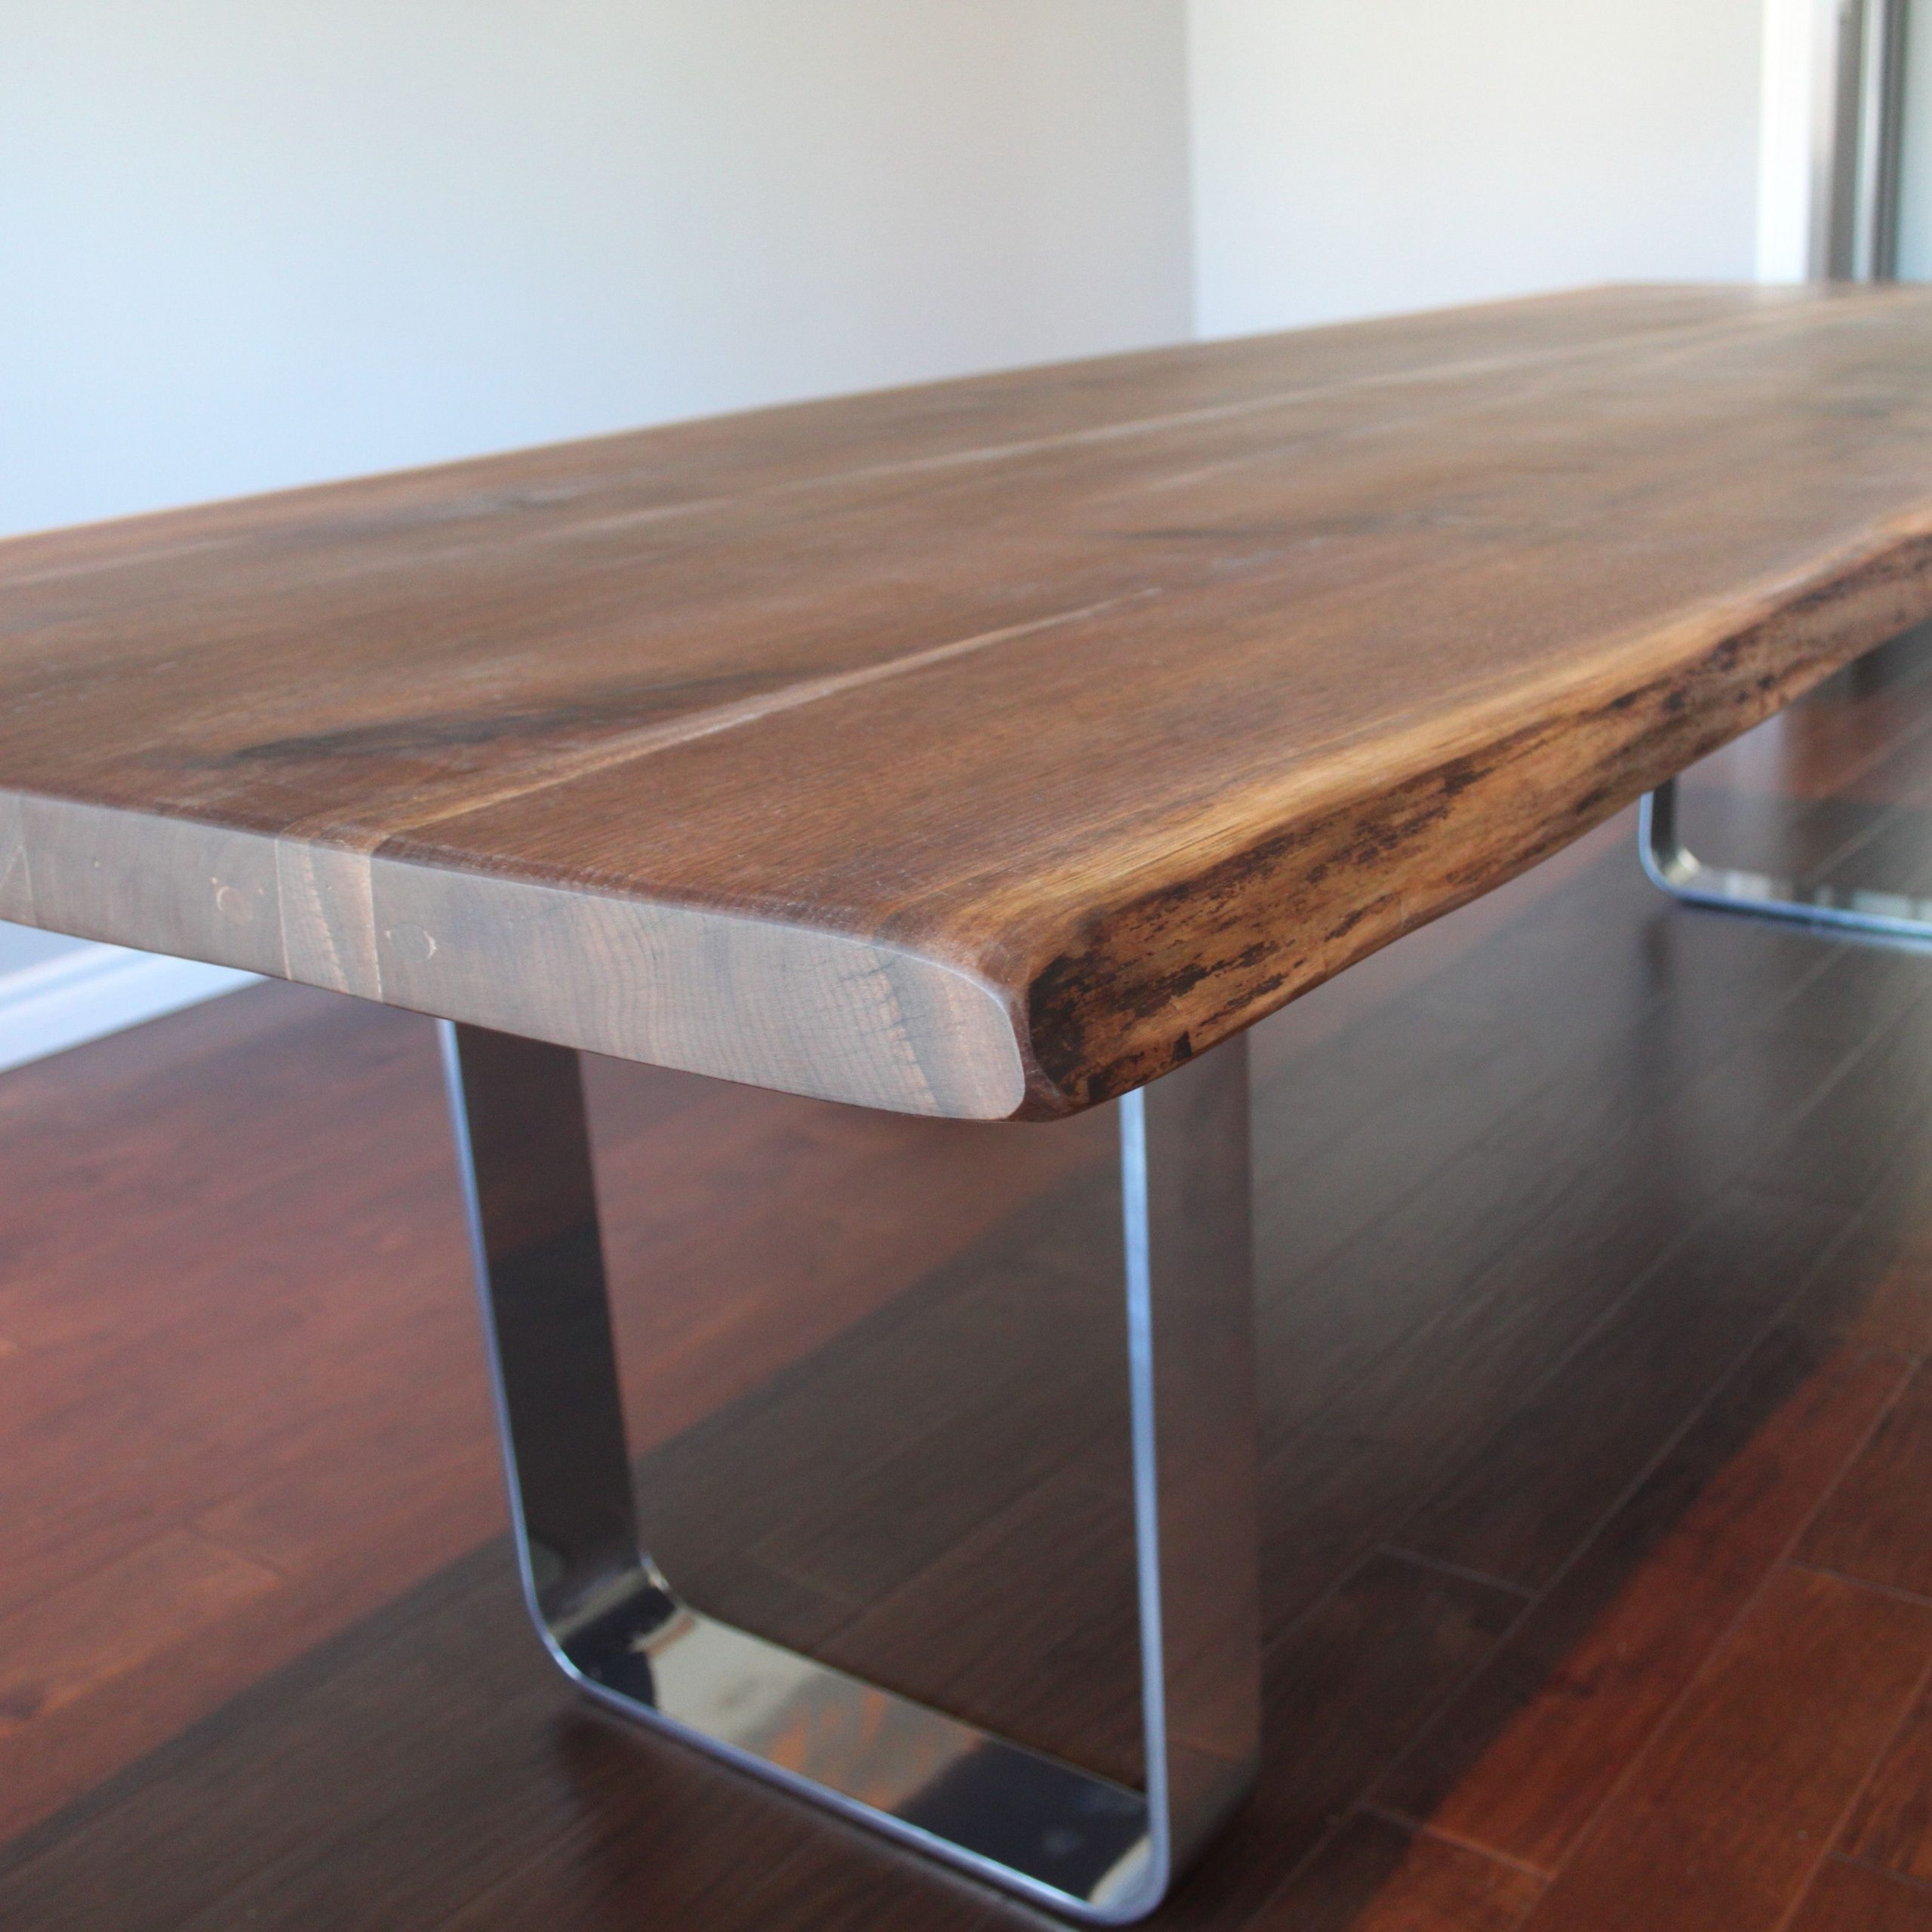 Living Wood Regarding Latest Walnut Finish Live Edge Wood Contemporary Dining Tables (View 6 of 25)